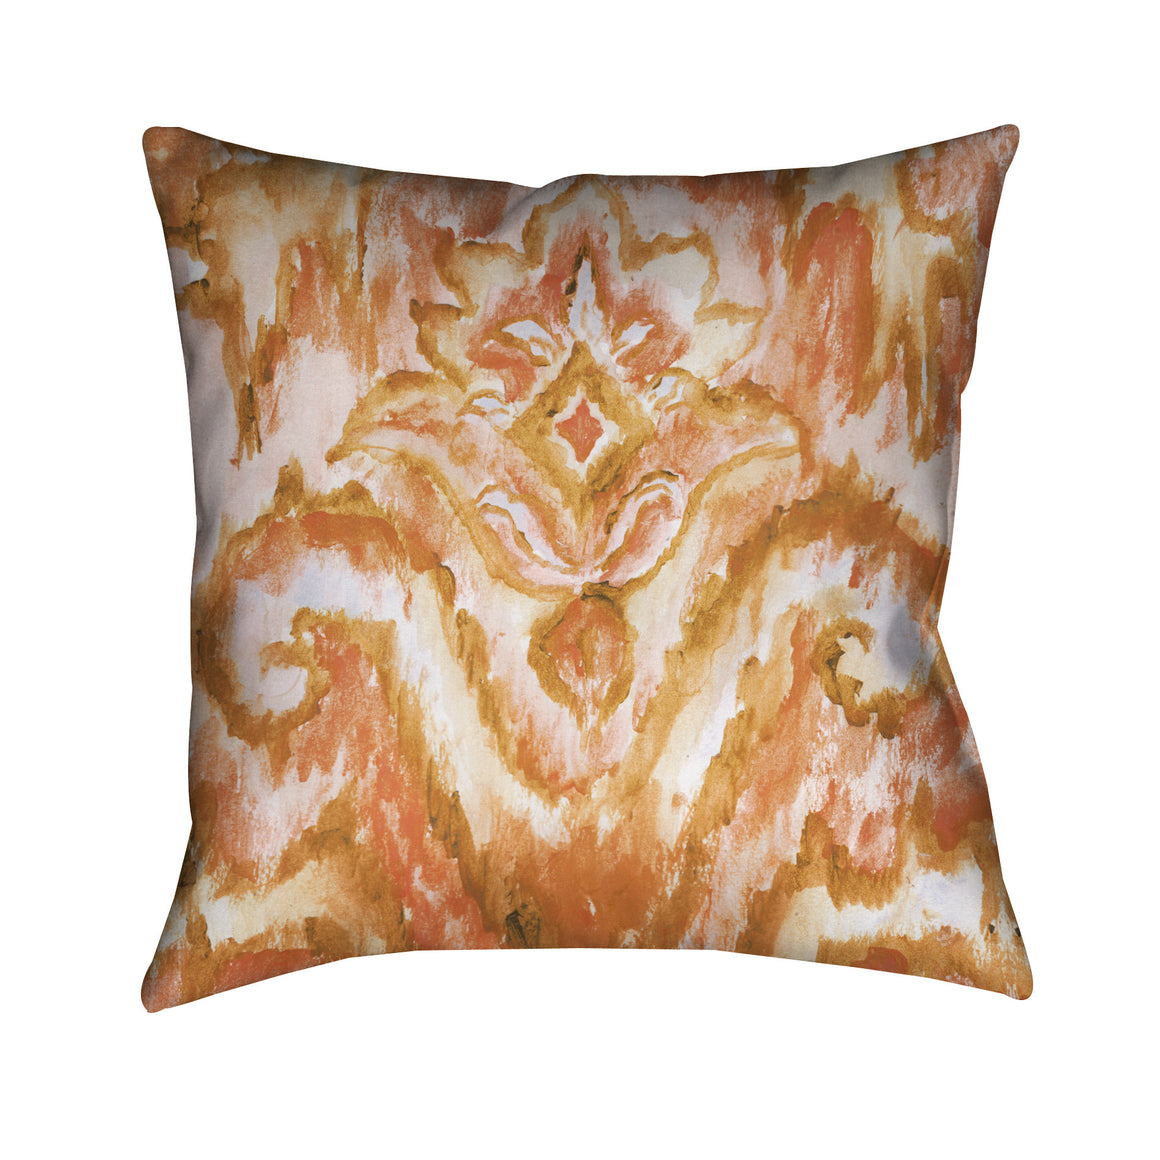 Coral Pattern Outdoor Decorative Pillow